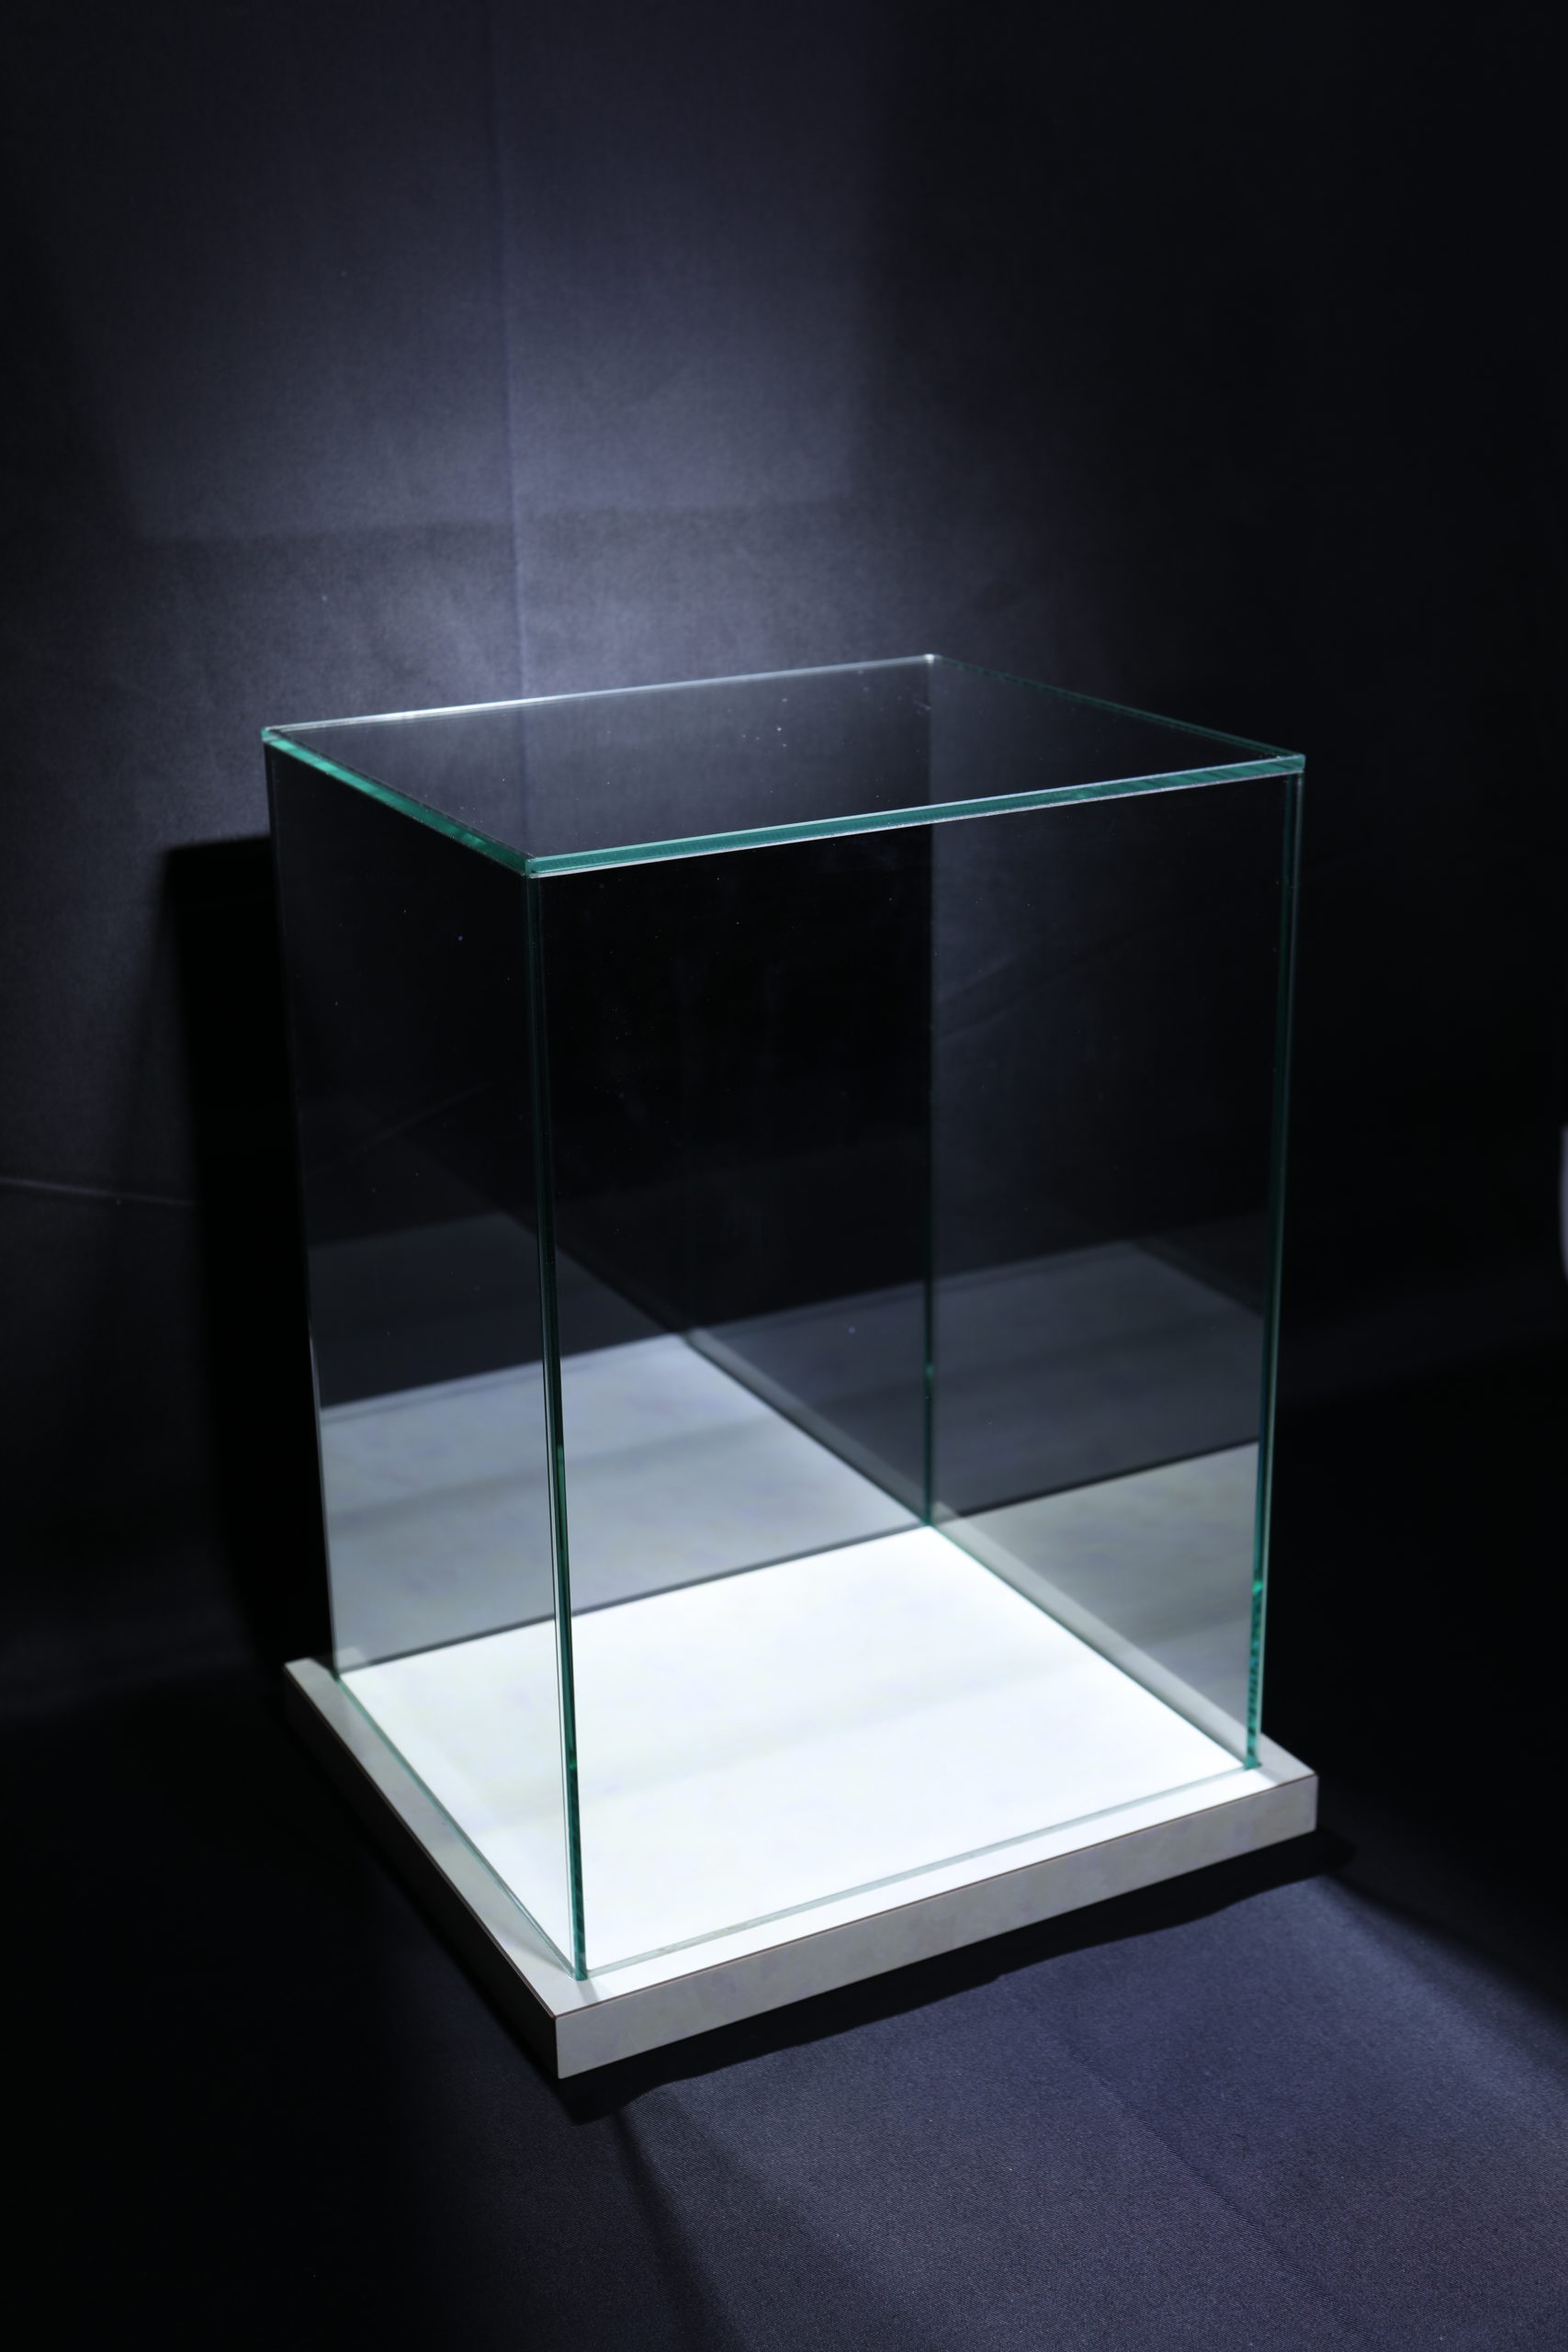 BC_NM-Premium glass case_Bishamonten